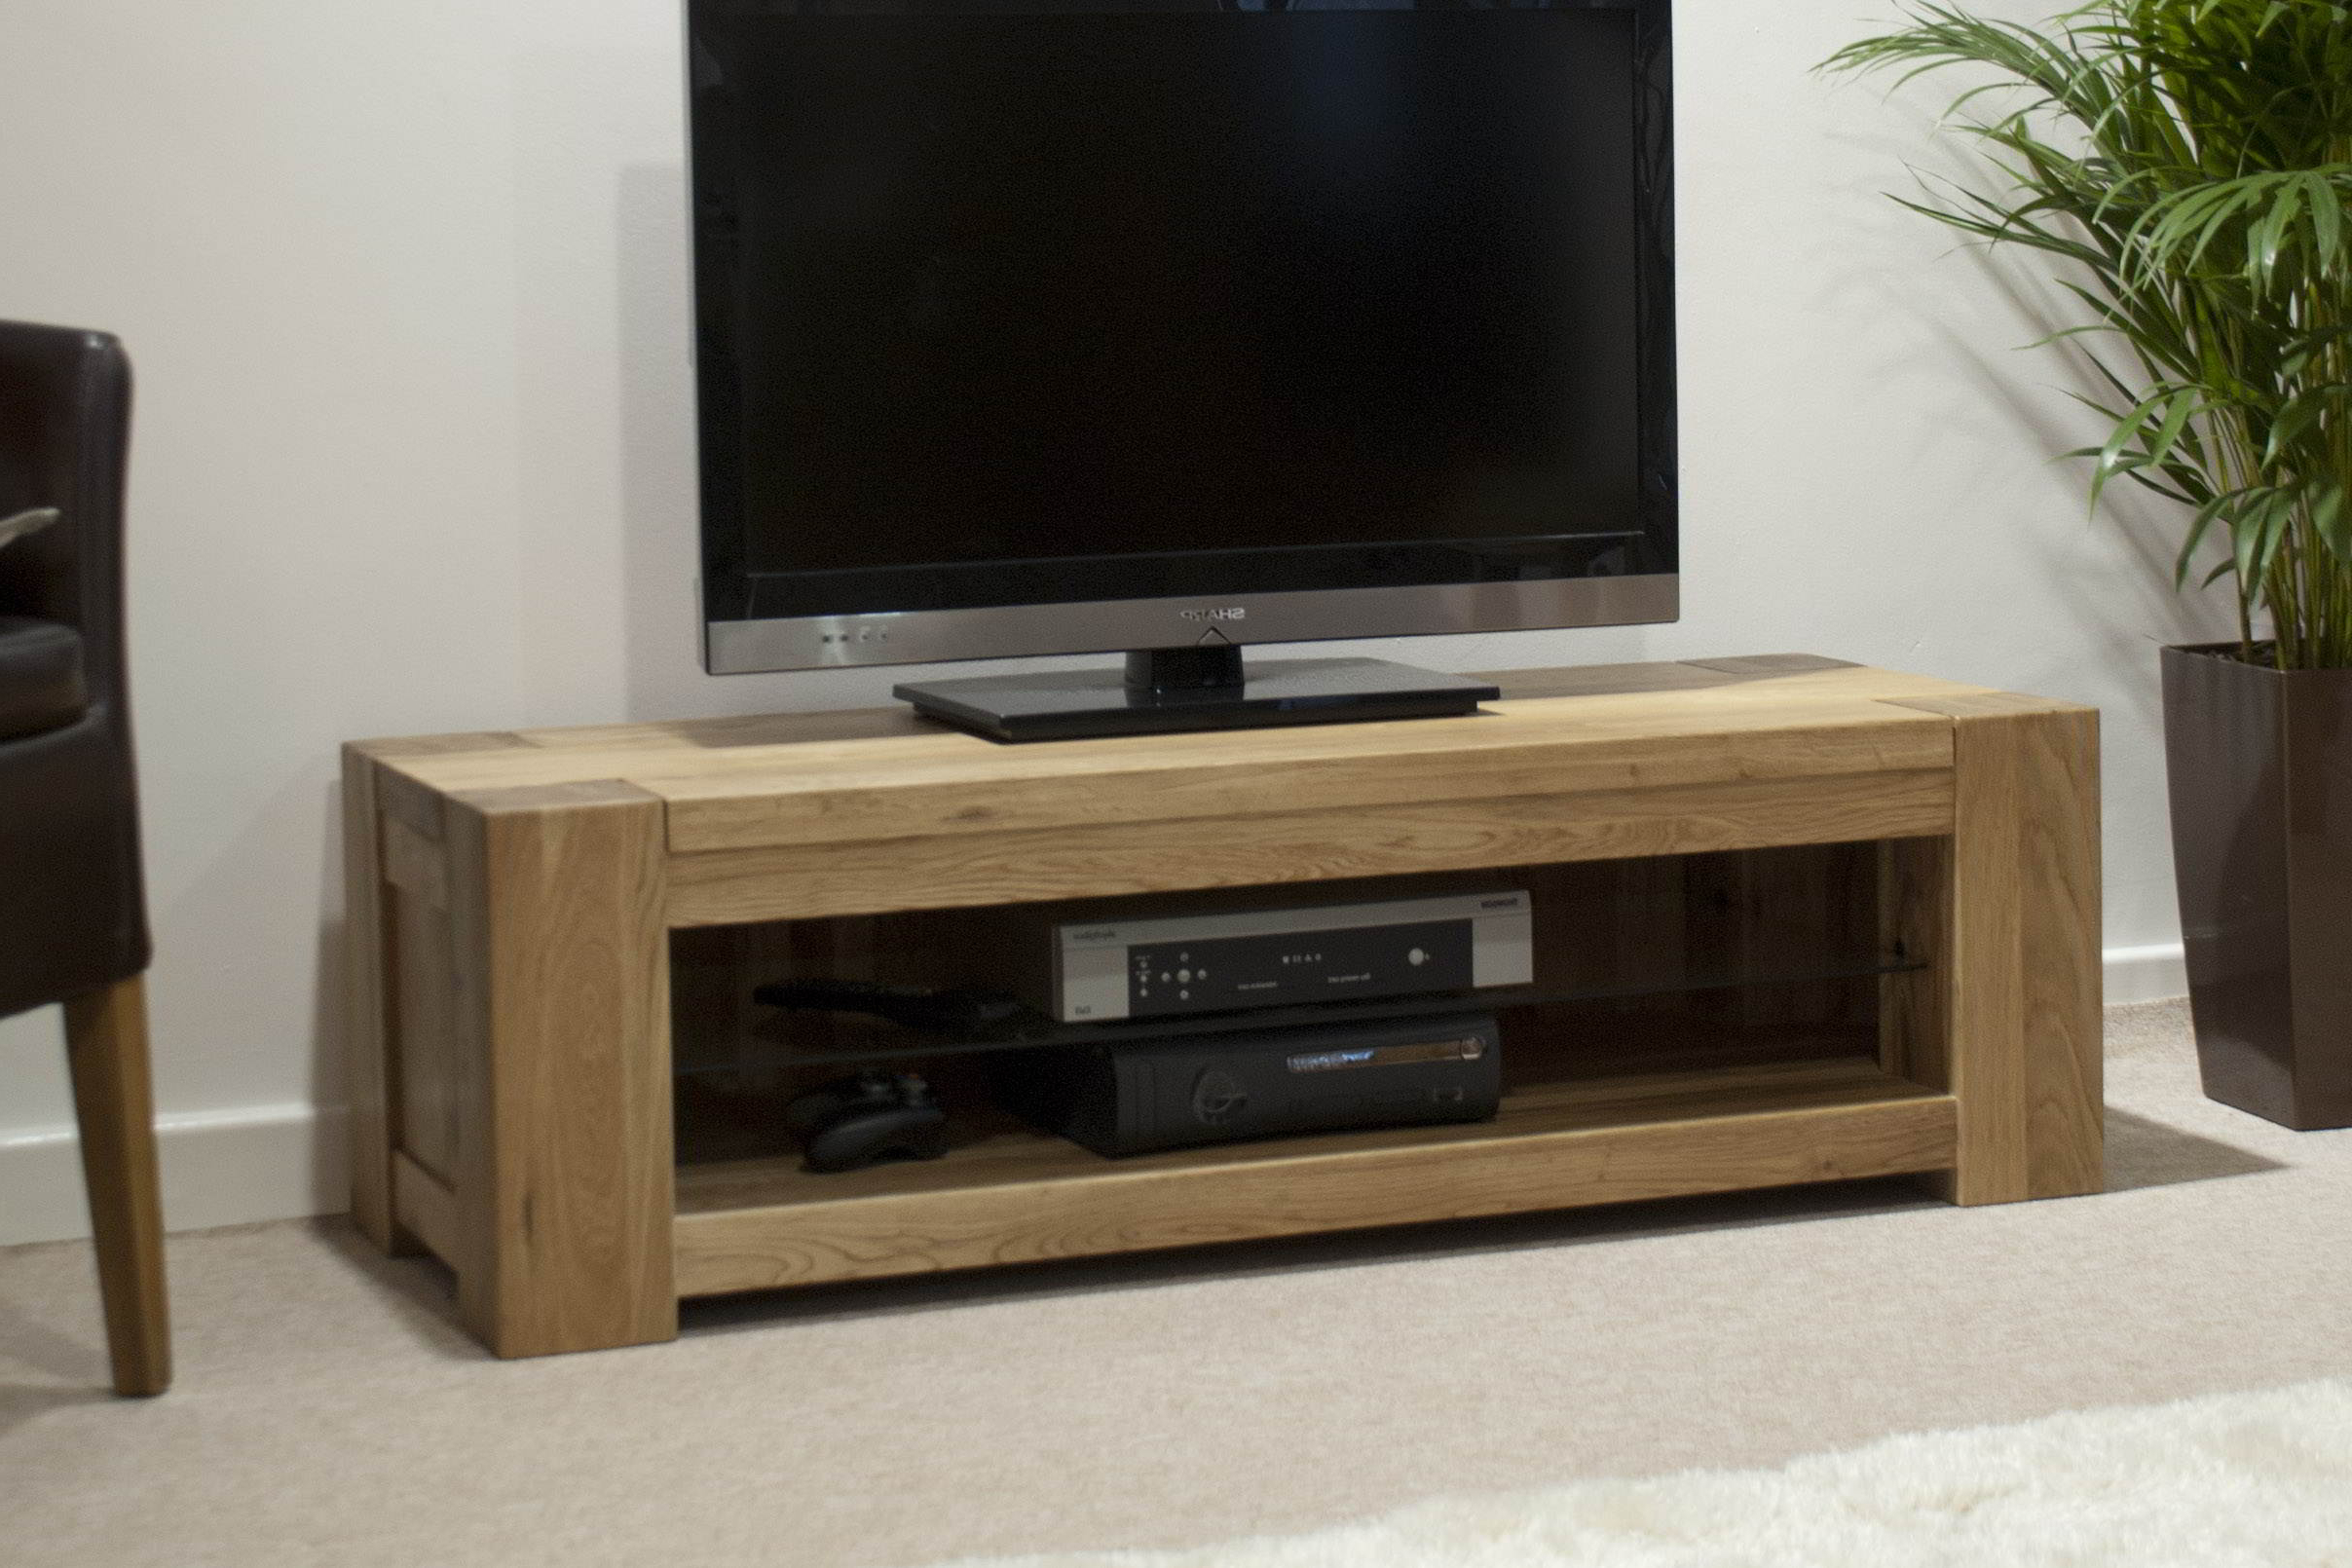 2017 Padova Solid Oak Furniture Plasma Television Cabinet Stand Unit (View 1 of 20)